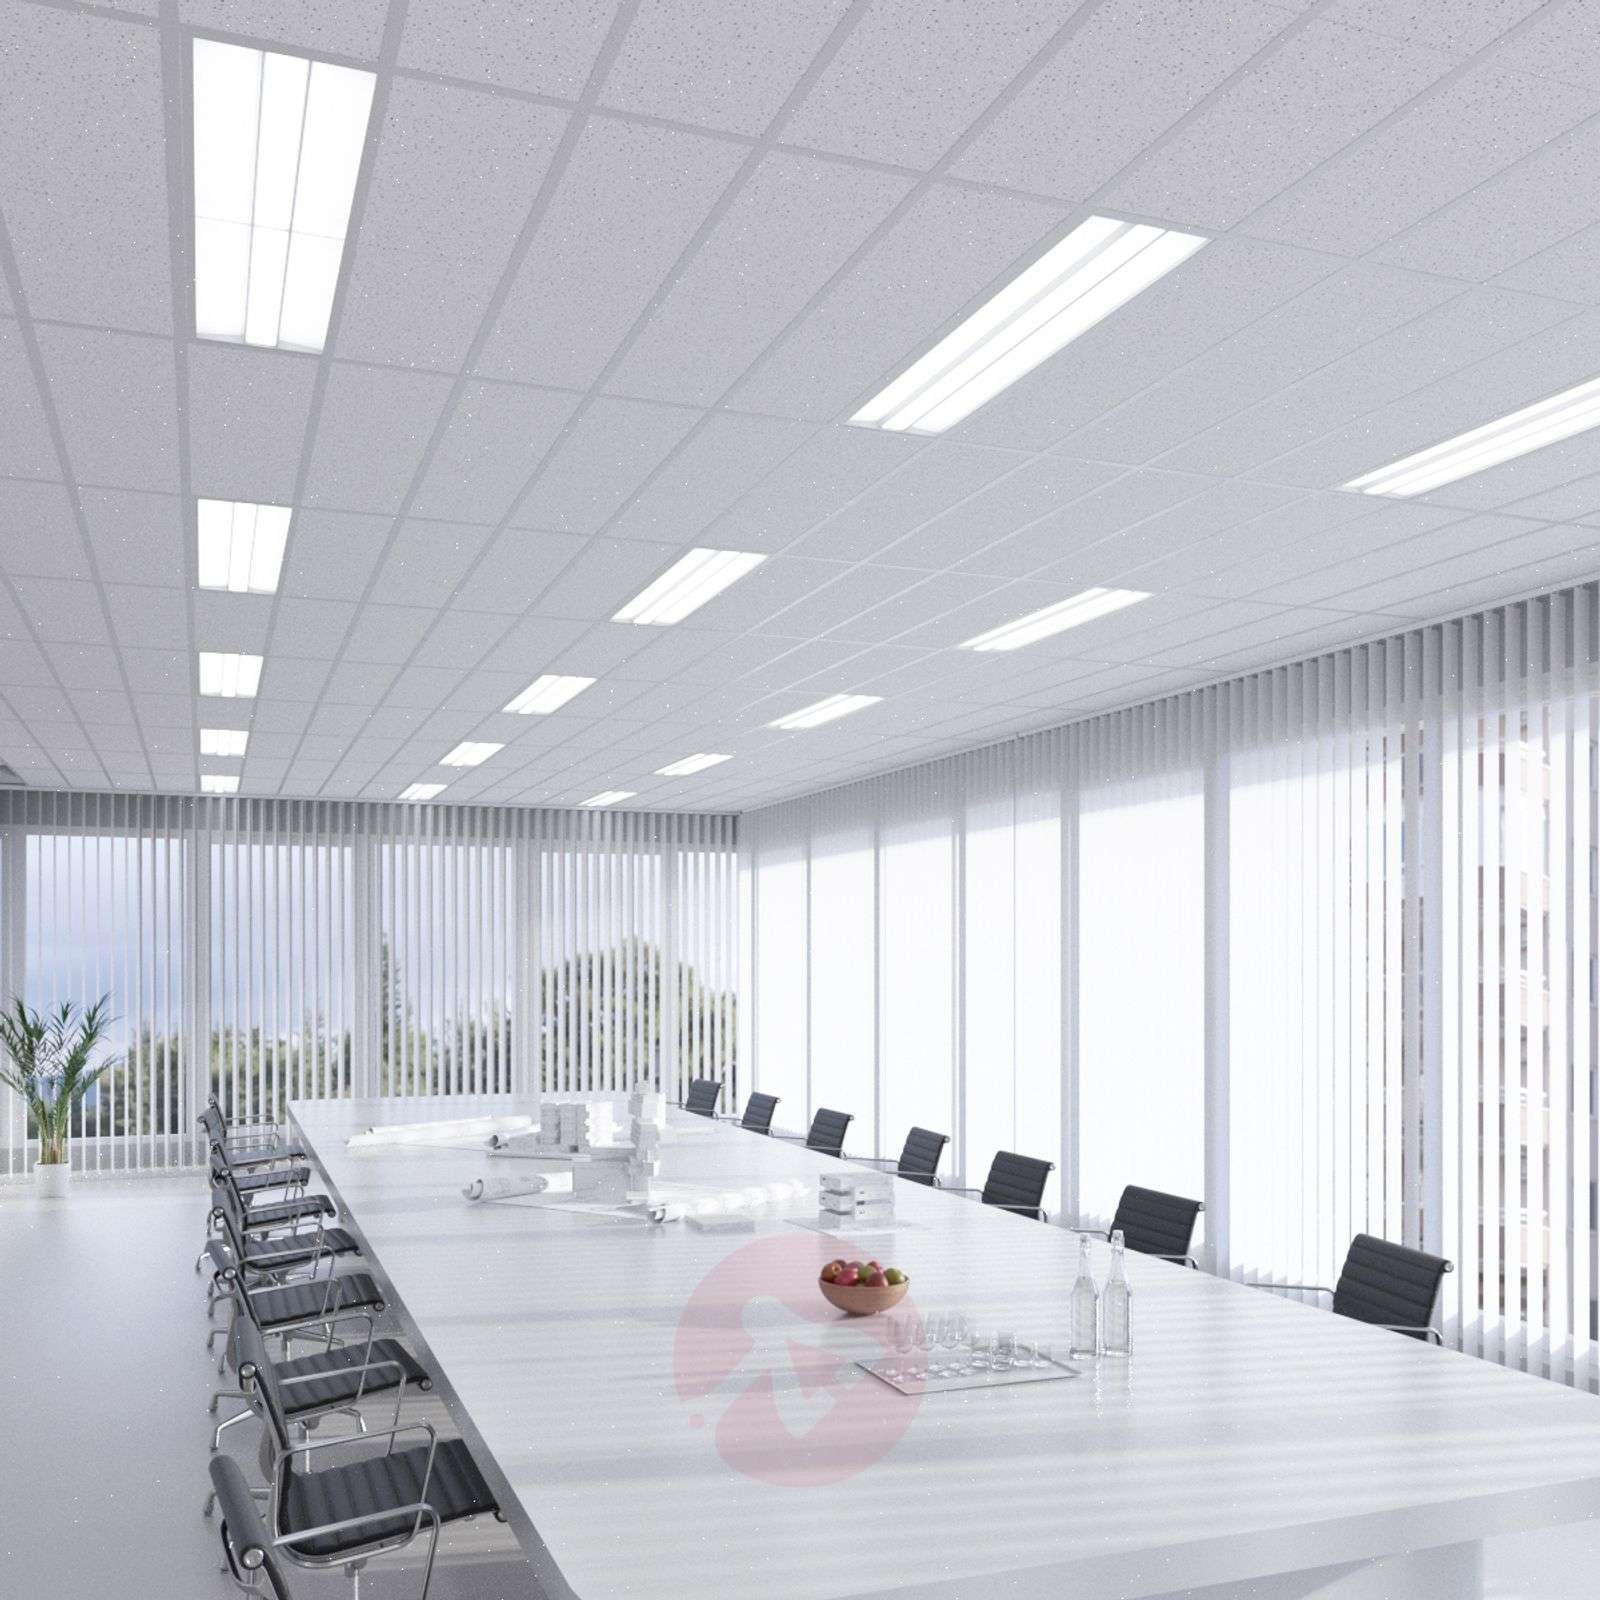 Malo LED panel for louvre ceilings, 30 cm x 120 cm-9978082-02